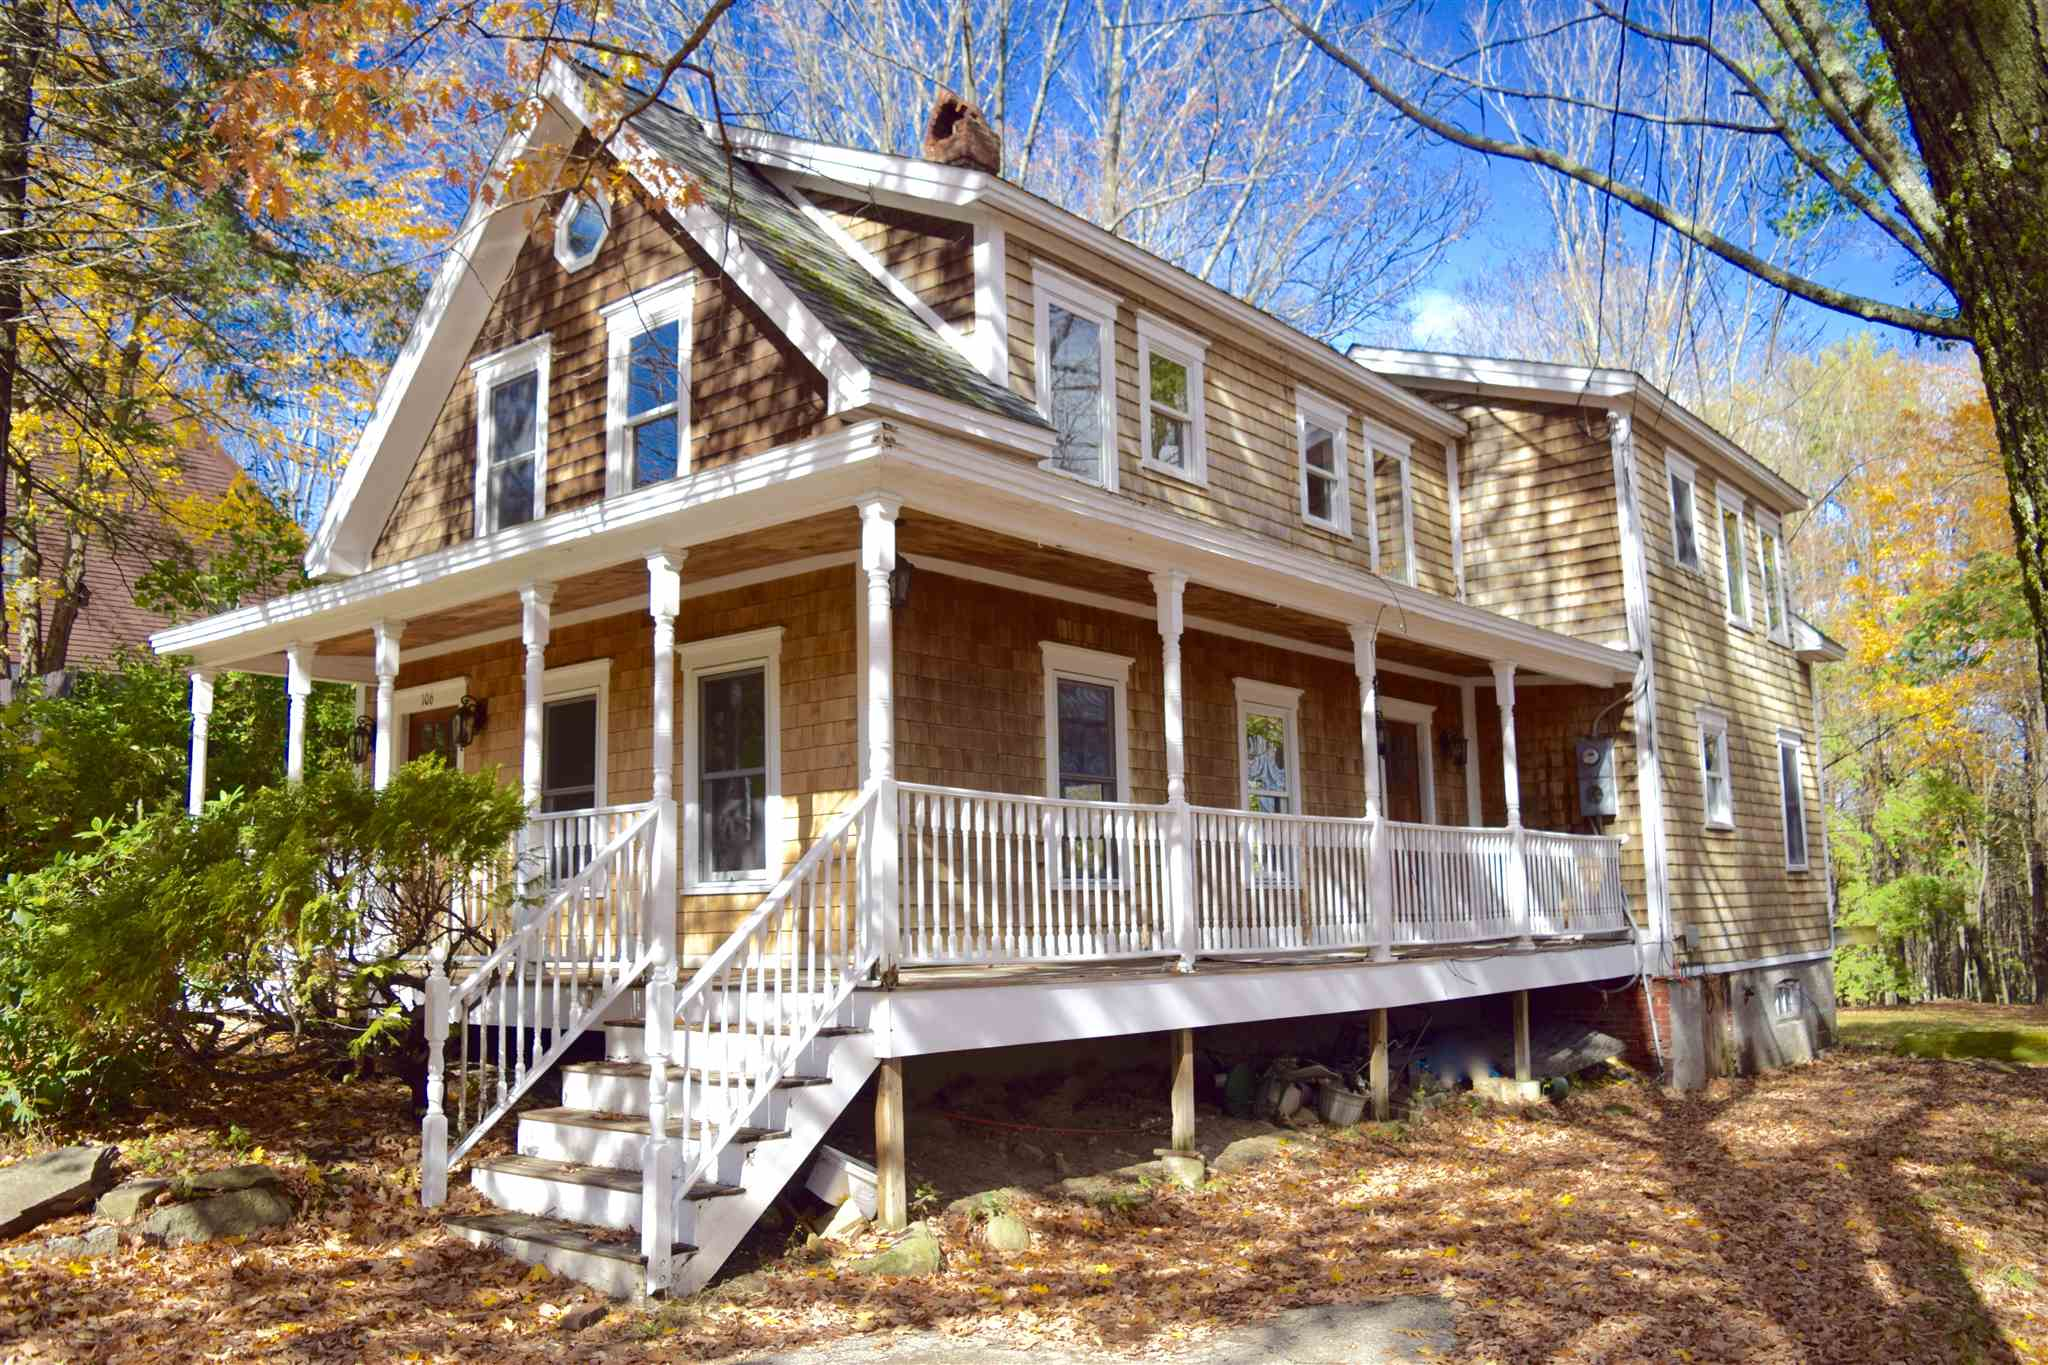 MLS 4839482: 106 Highland Street, Plymouth NH